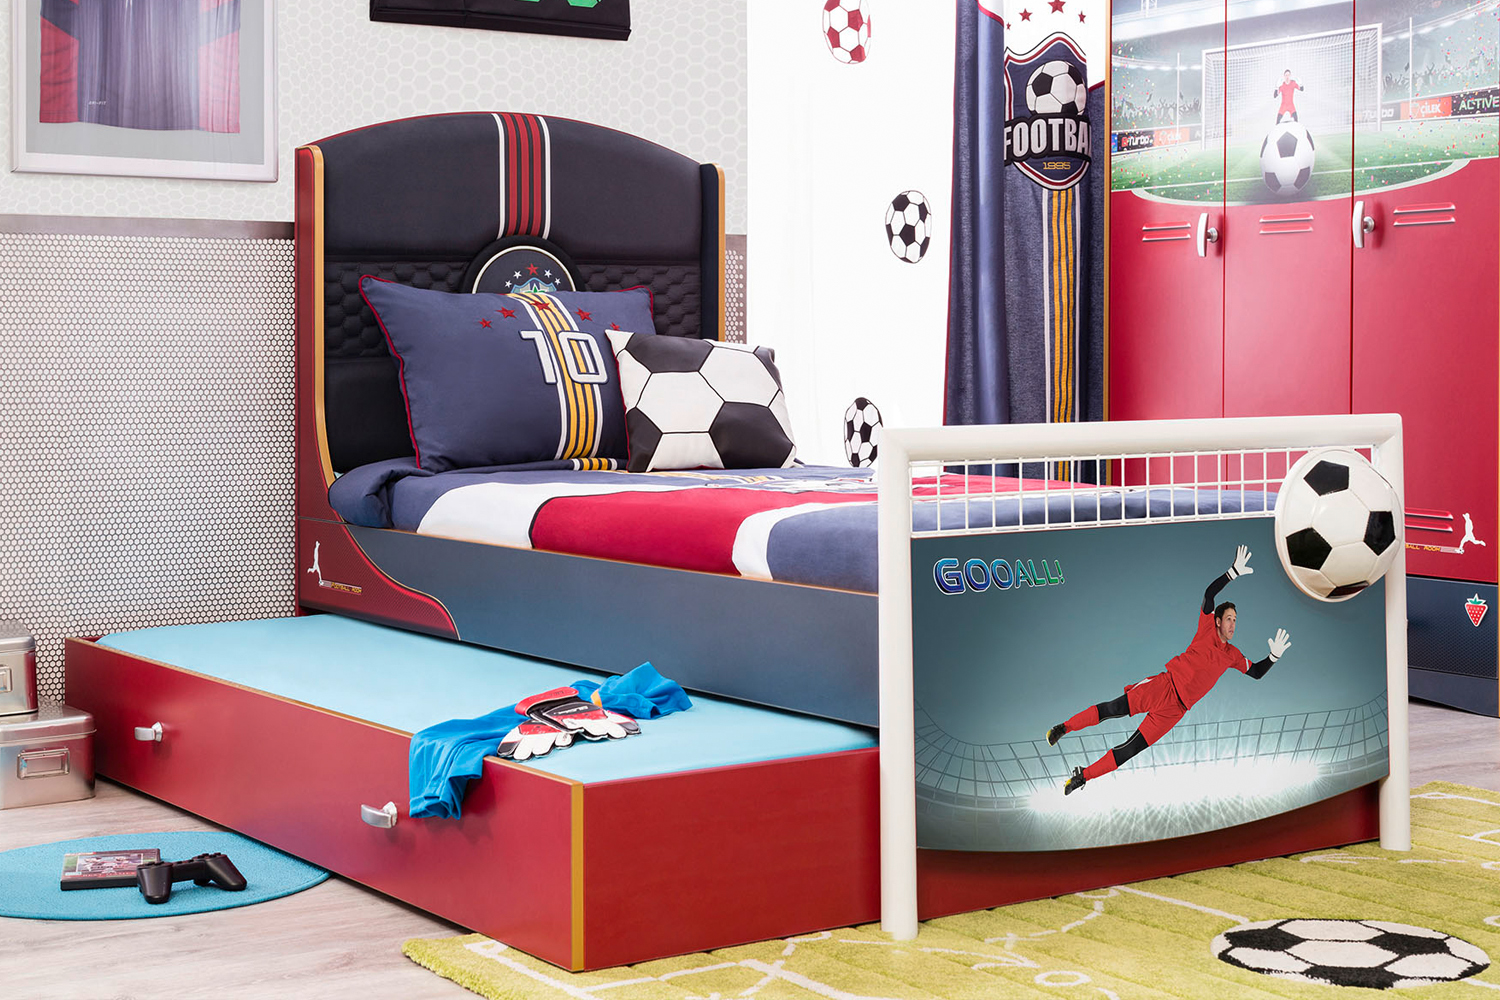 Football Bed - 02